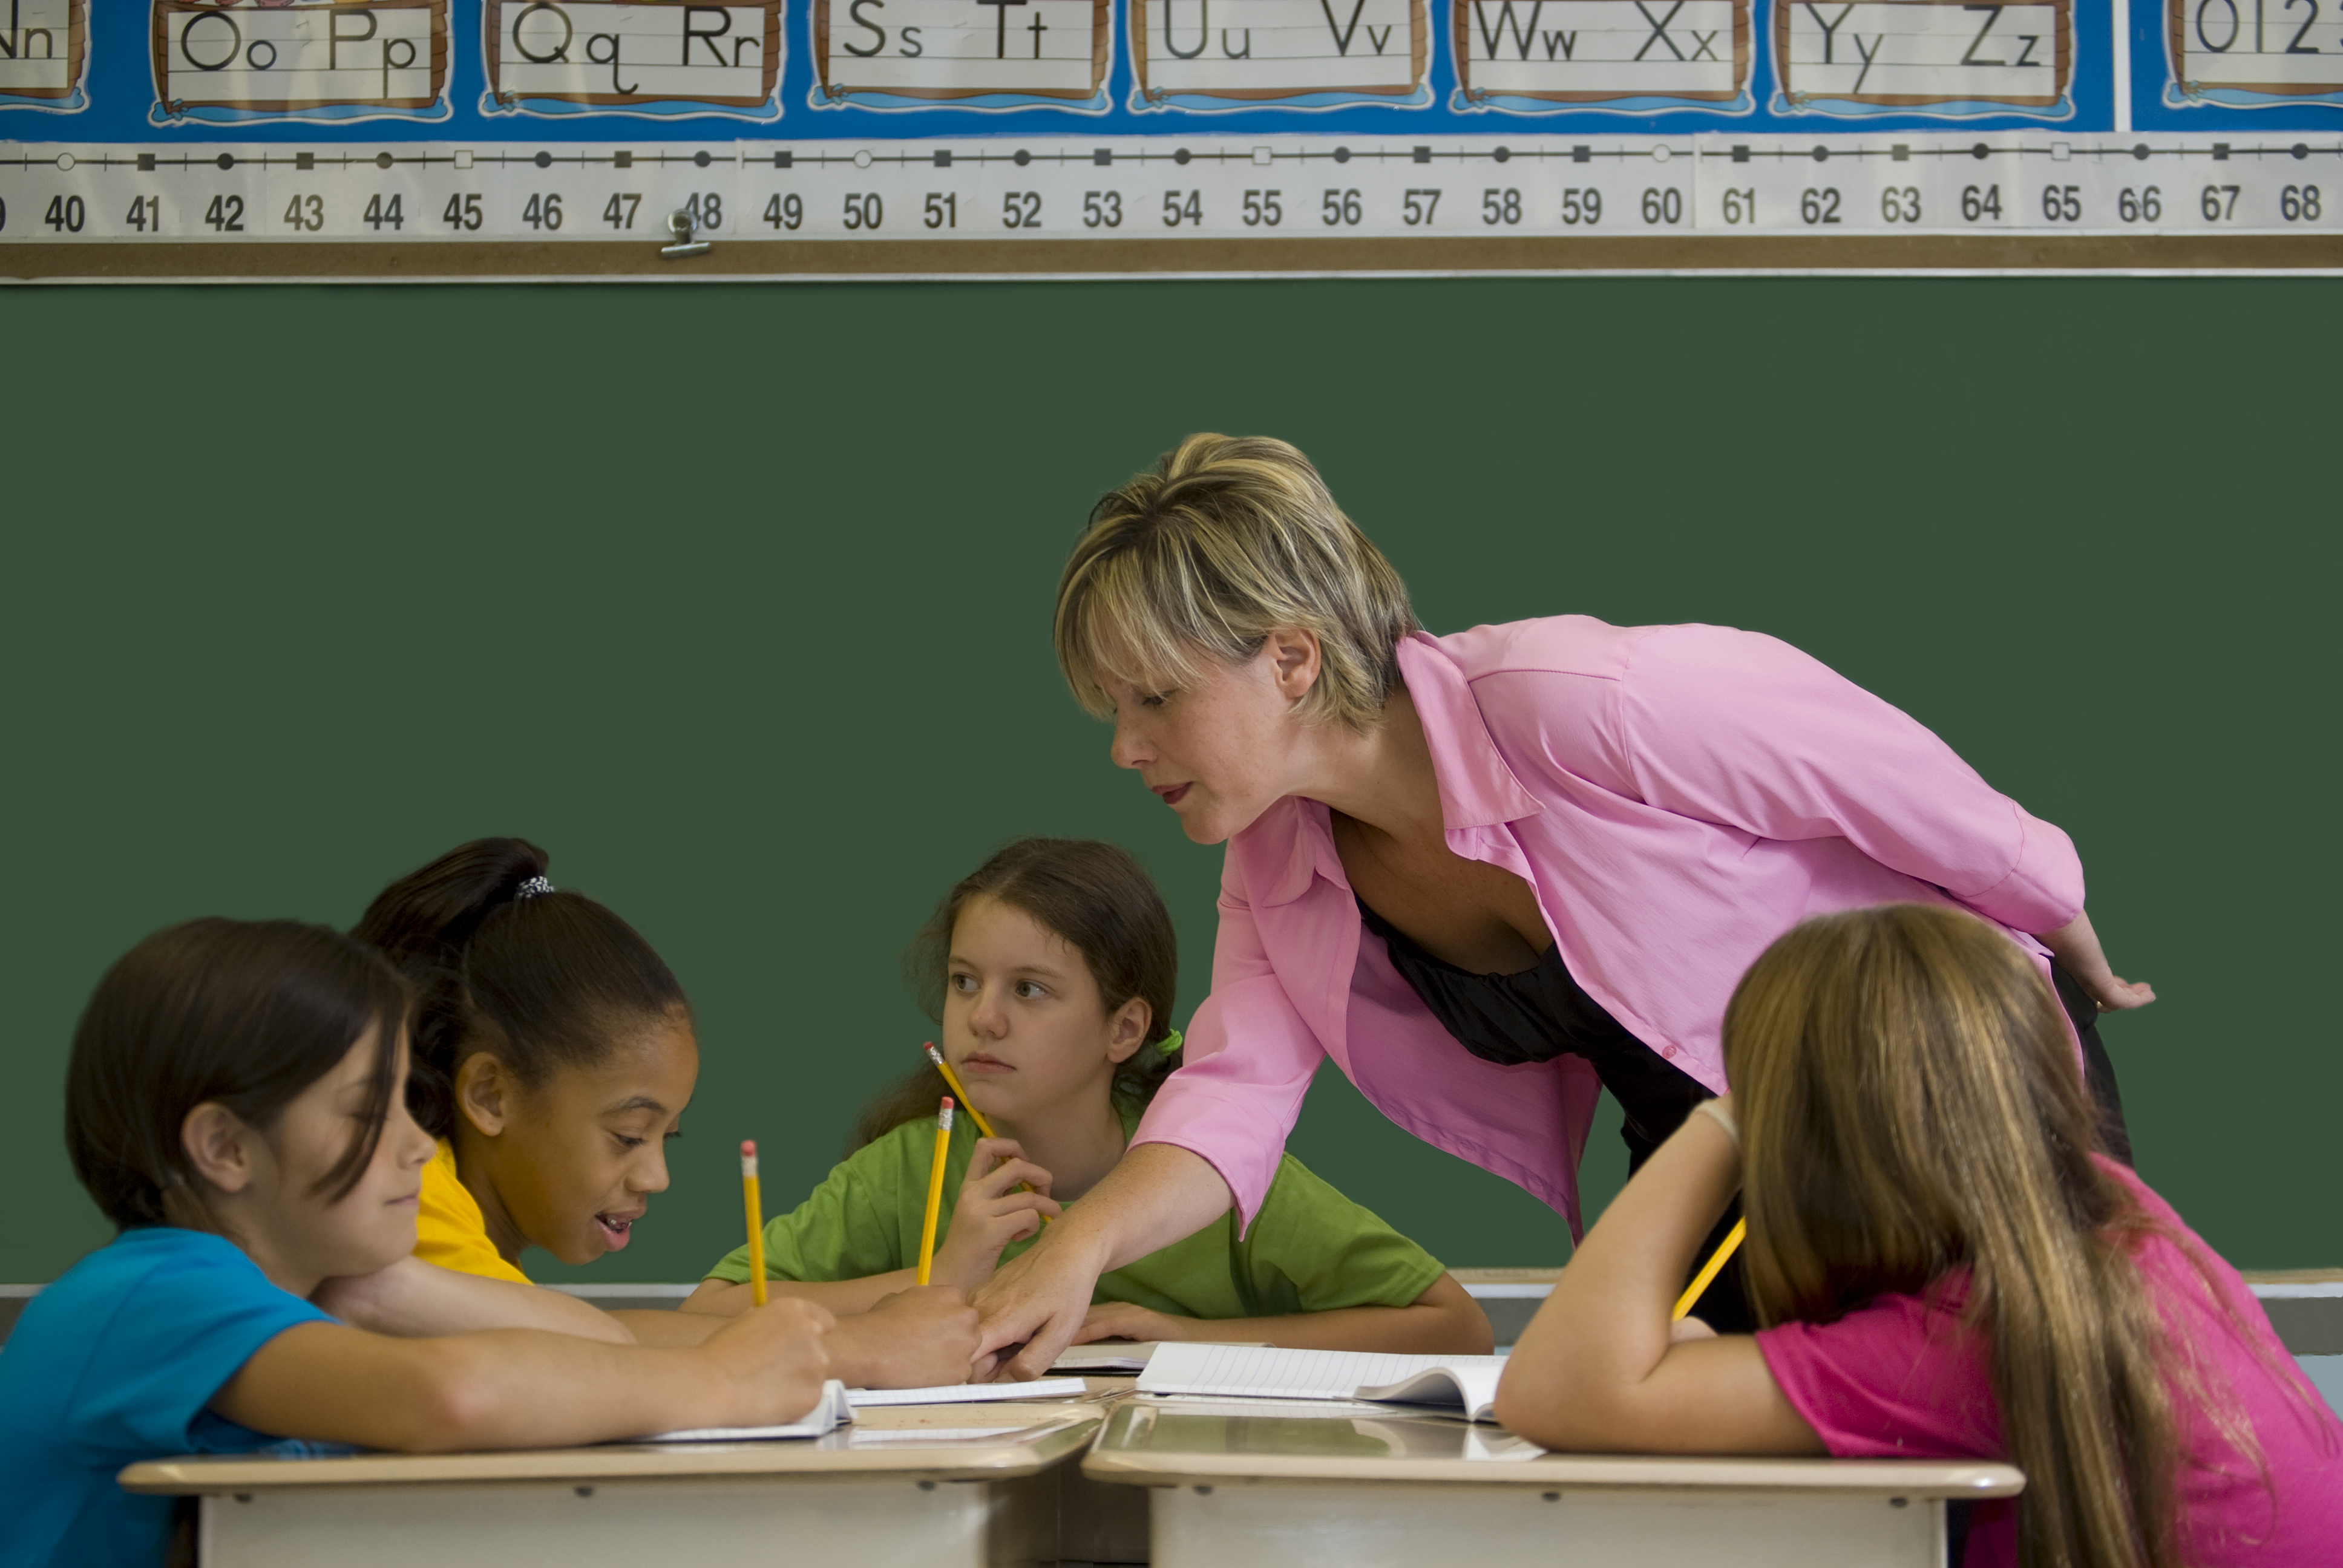 a photo of a teacher leaning over a group of young students